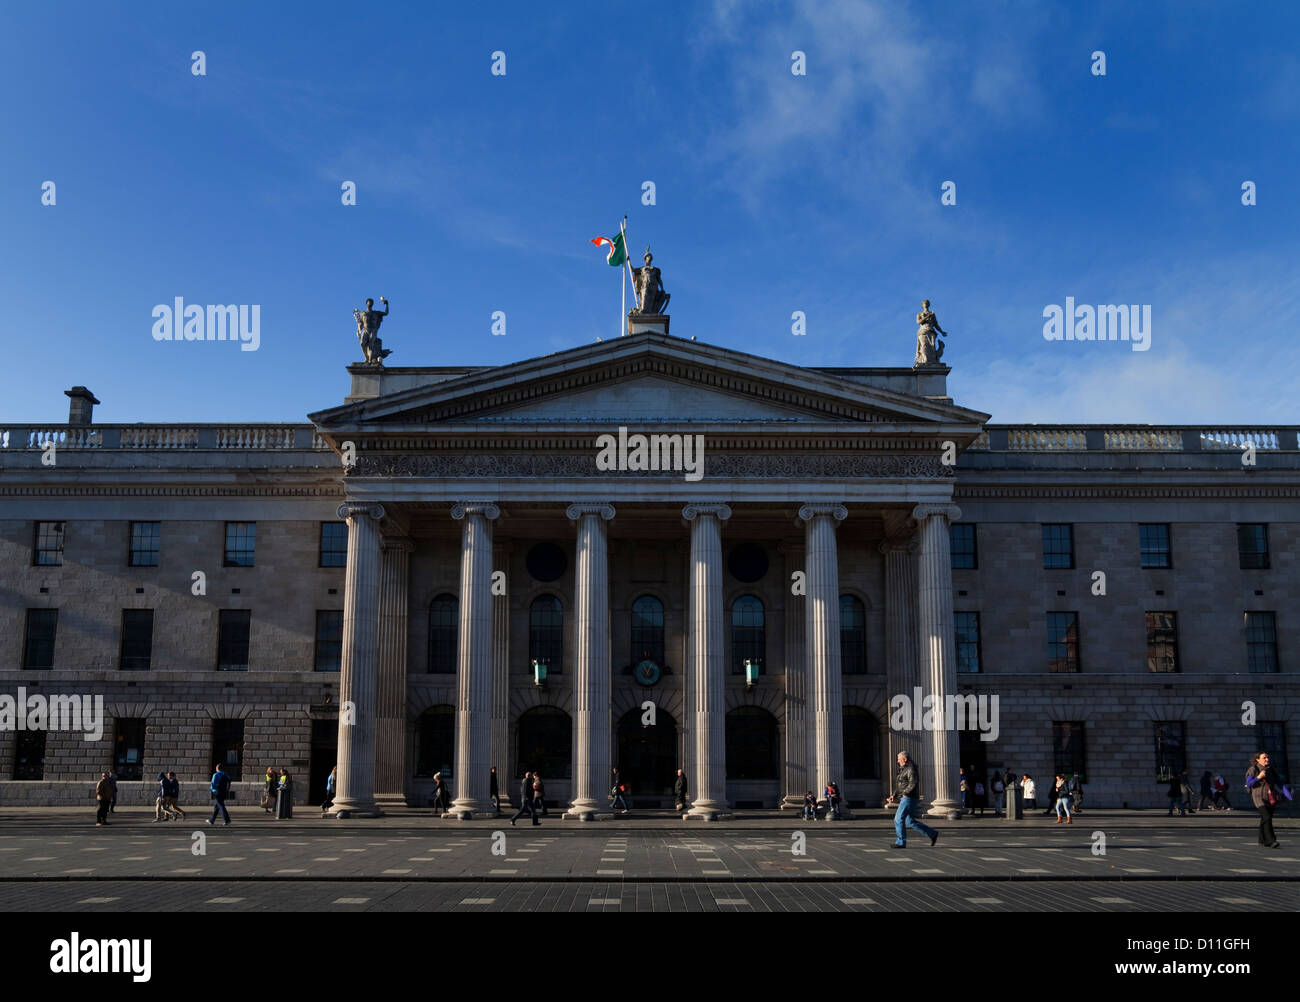 The General Post Office (GPO) in O'Connell Street, Rebel headquarters of the 1916 Easter Rising,  in Dublin, - Stock Image